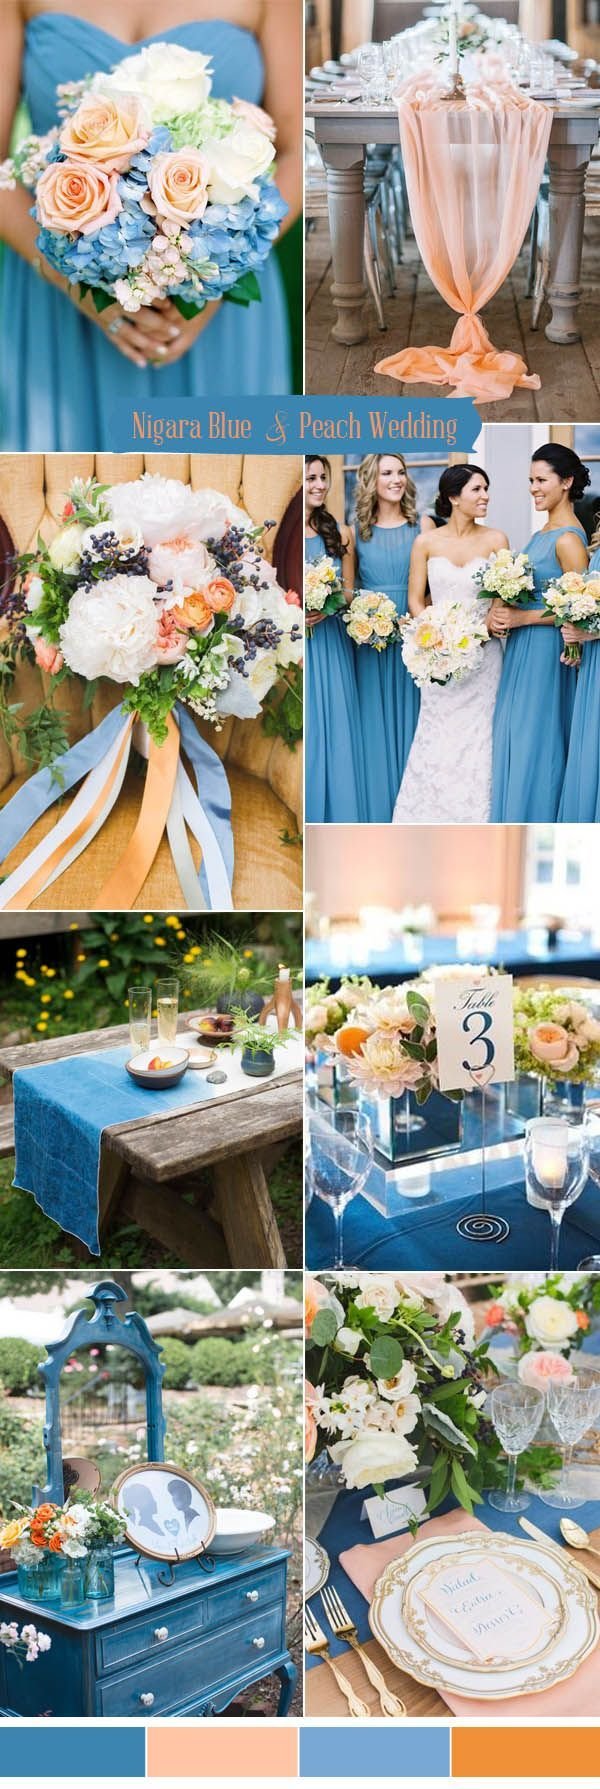 pantone color nigara blue and peach wedding color ideas for 2017 trends